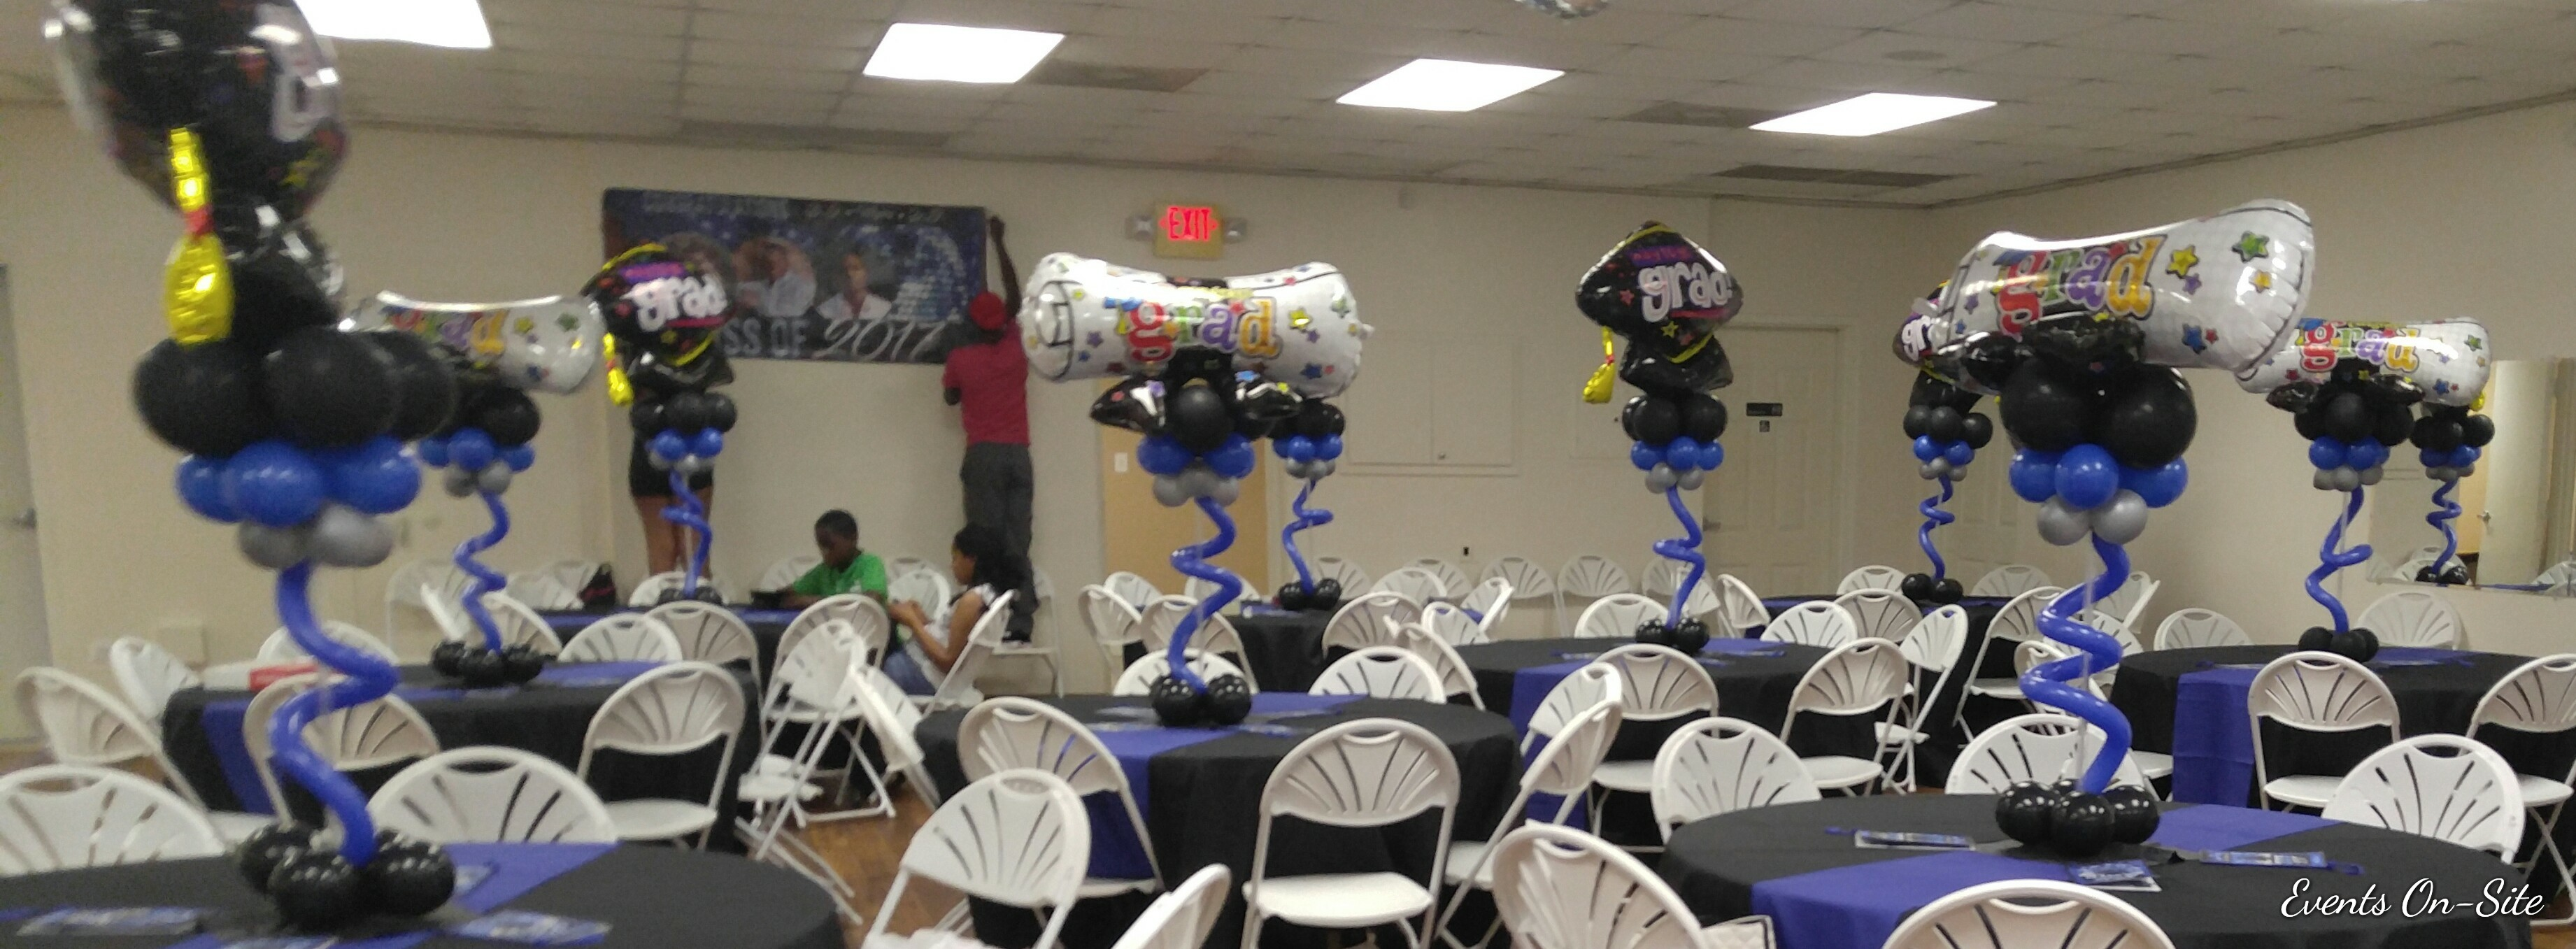 Foil Centerpiece - Graduation